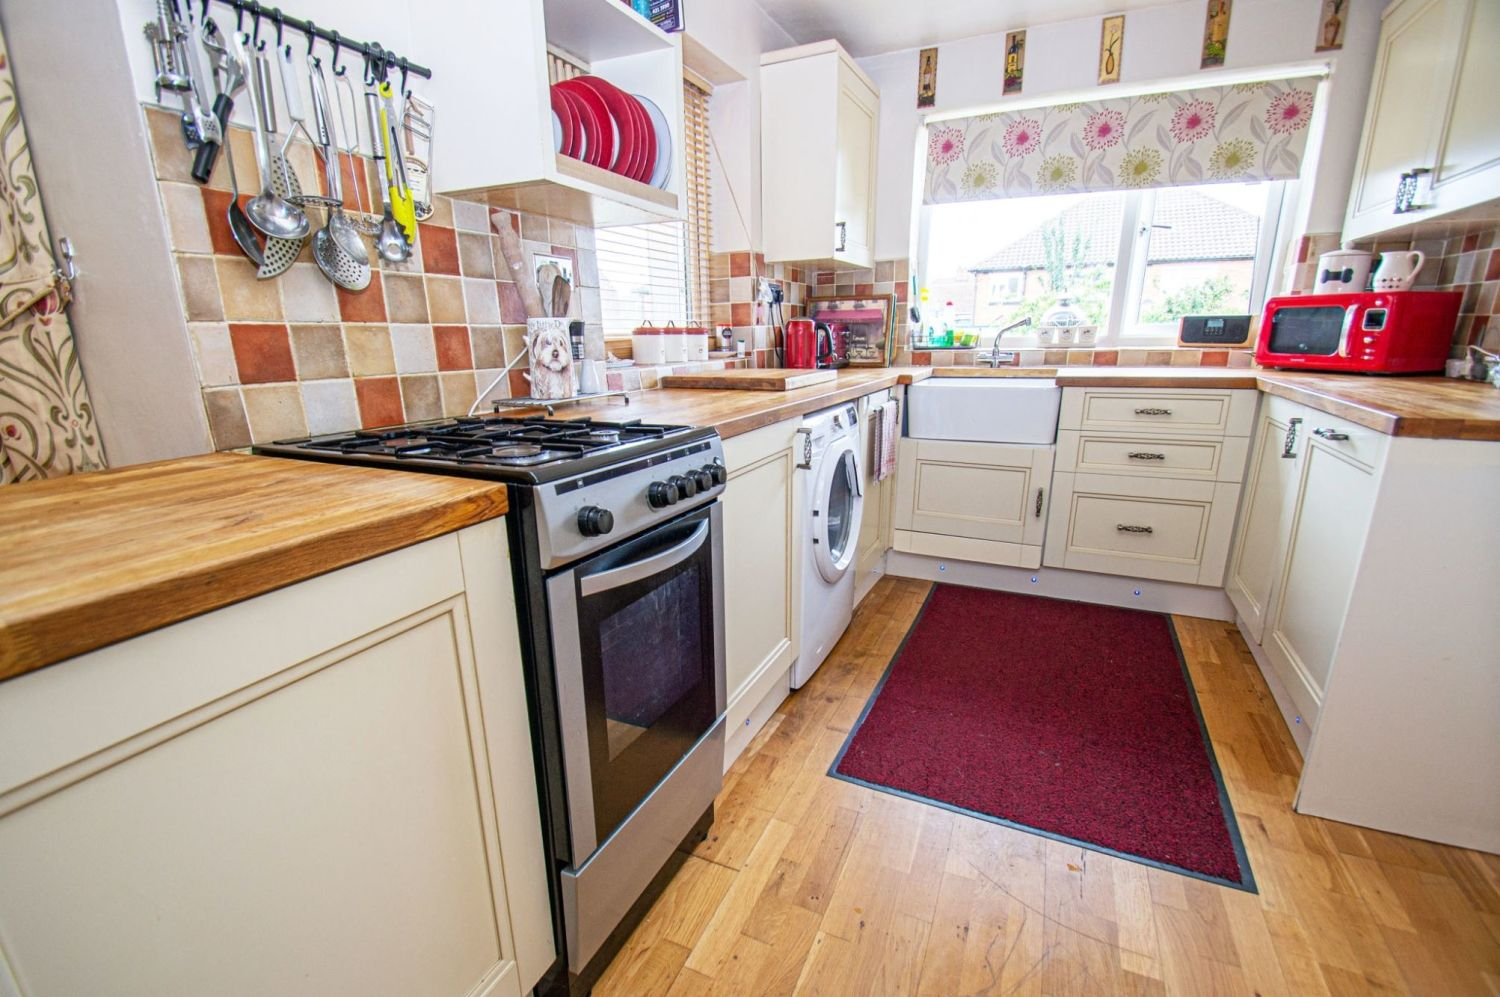 4 bed semi-detached for sale in Wheatcroft Close, Halesowen  - Property Image 7